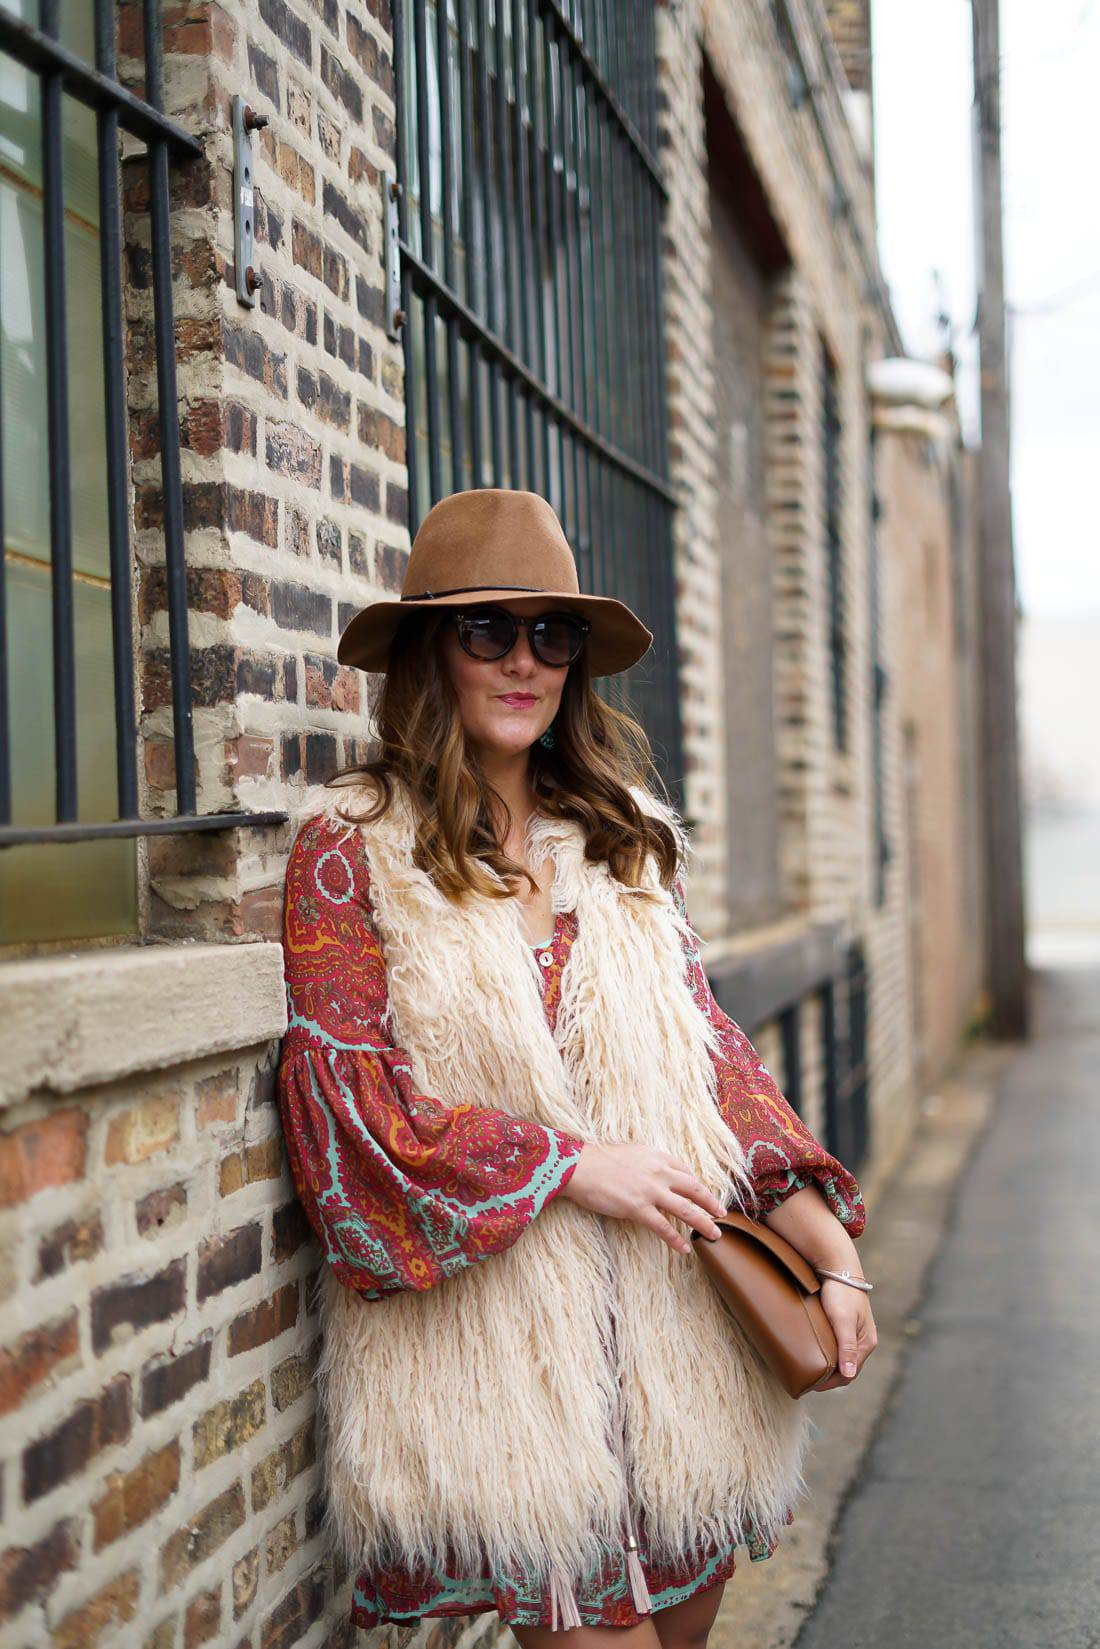 Show Me Your Mumu Tunic Swing Dress, Brown Fedora, Brown Leather Wedge Booties, Ray Ban Aviator Sunglasses, Chicago Blogger, Show Me Your Mumu Faux Fur Vest, Boho Fall Style